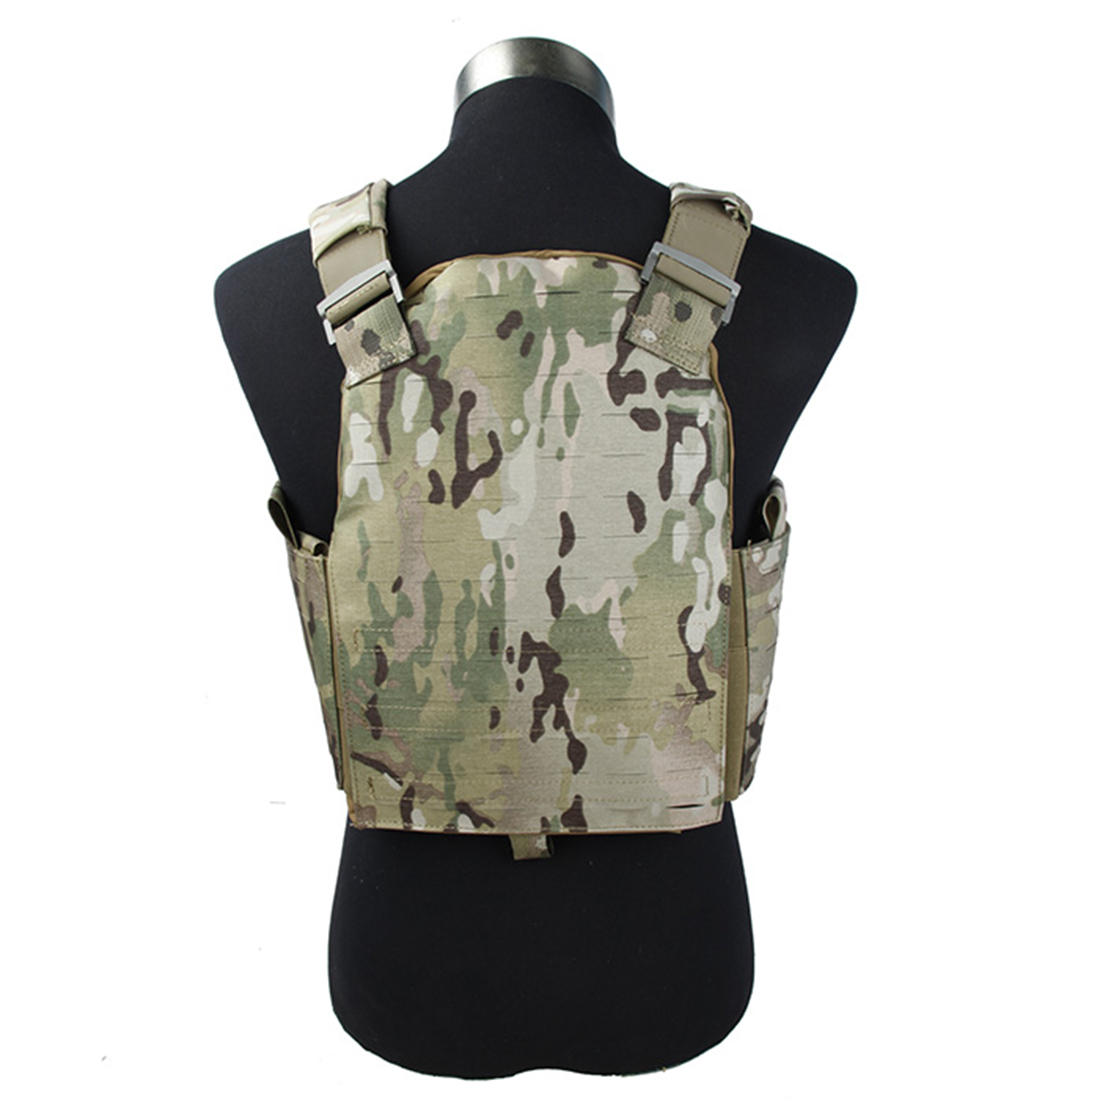 TMC AA Plate Carrier Outdoor Tactical Vest Outdoors Tactics Accessories 2020 New Arrival   - Multicam